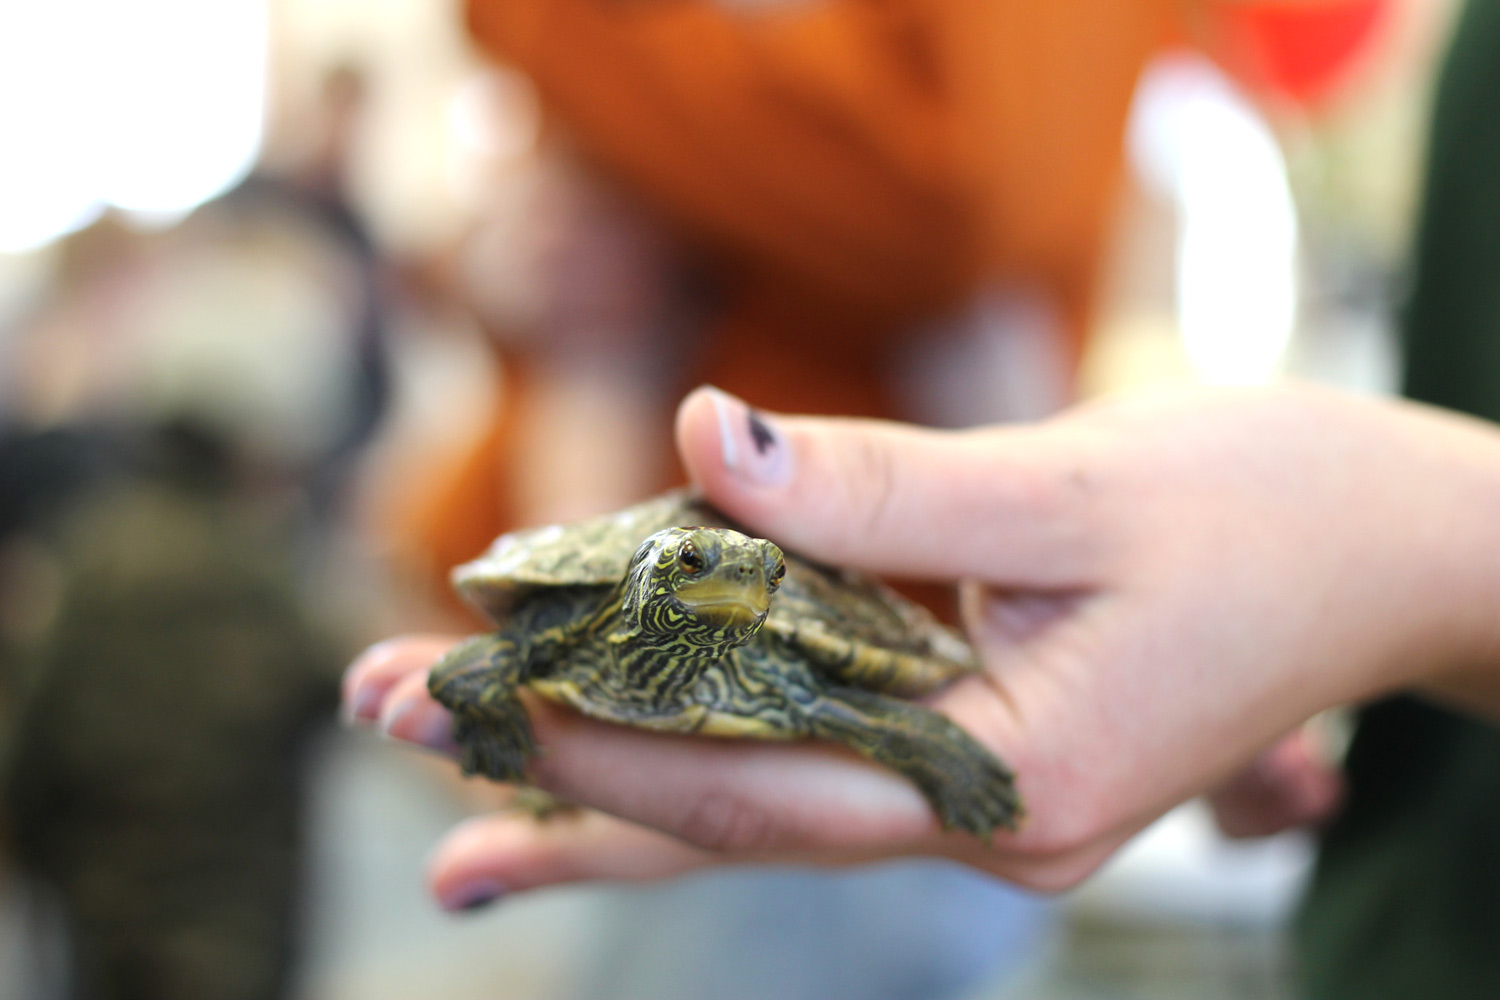 Here is a student showing a yellow-bellied turtle.